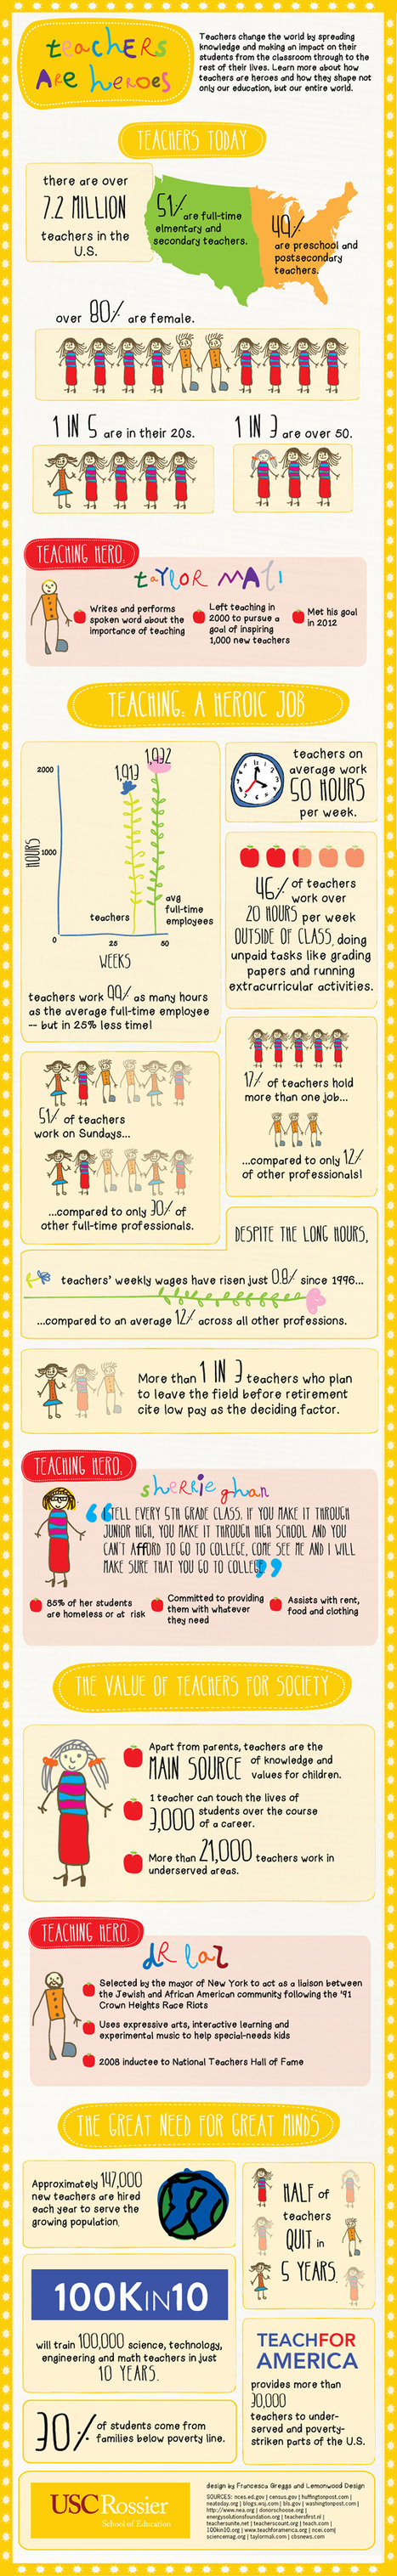 Teachers are Heroes [INFOGRAPHIC] | Connect All Schools | Scoop.it